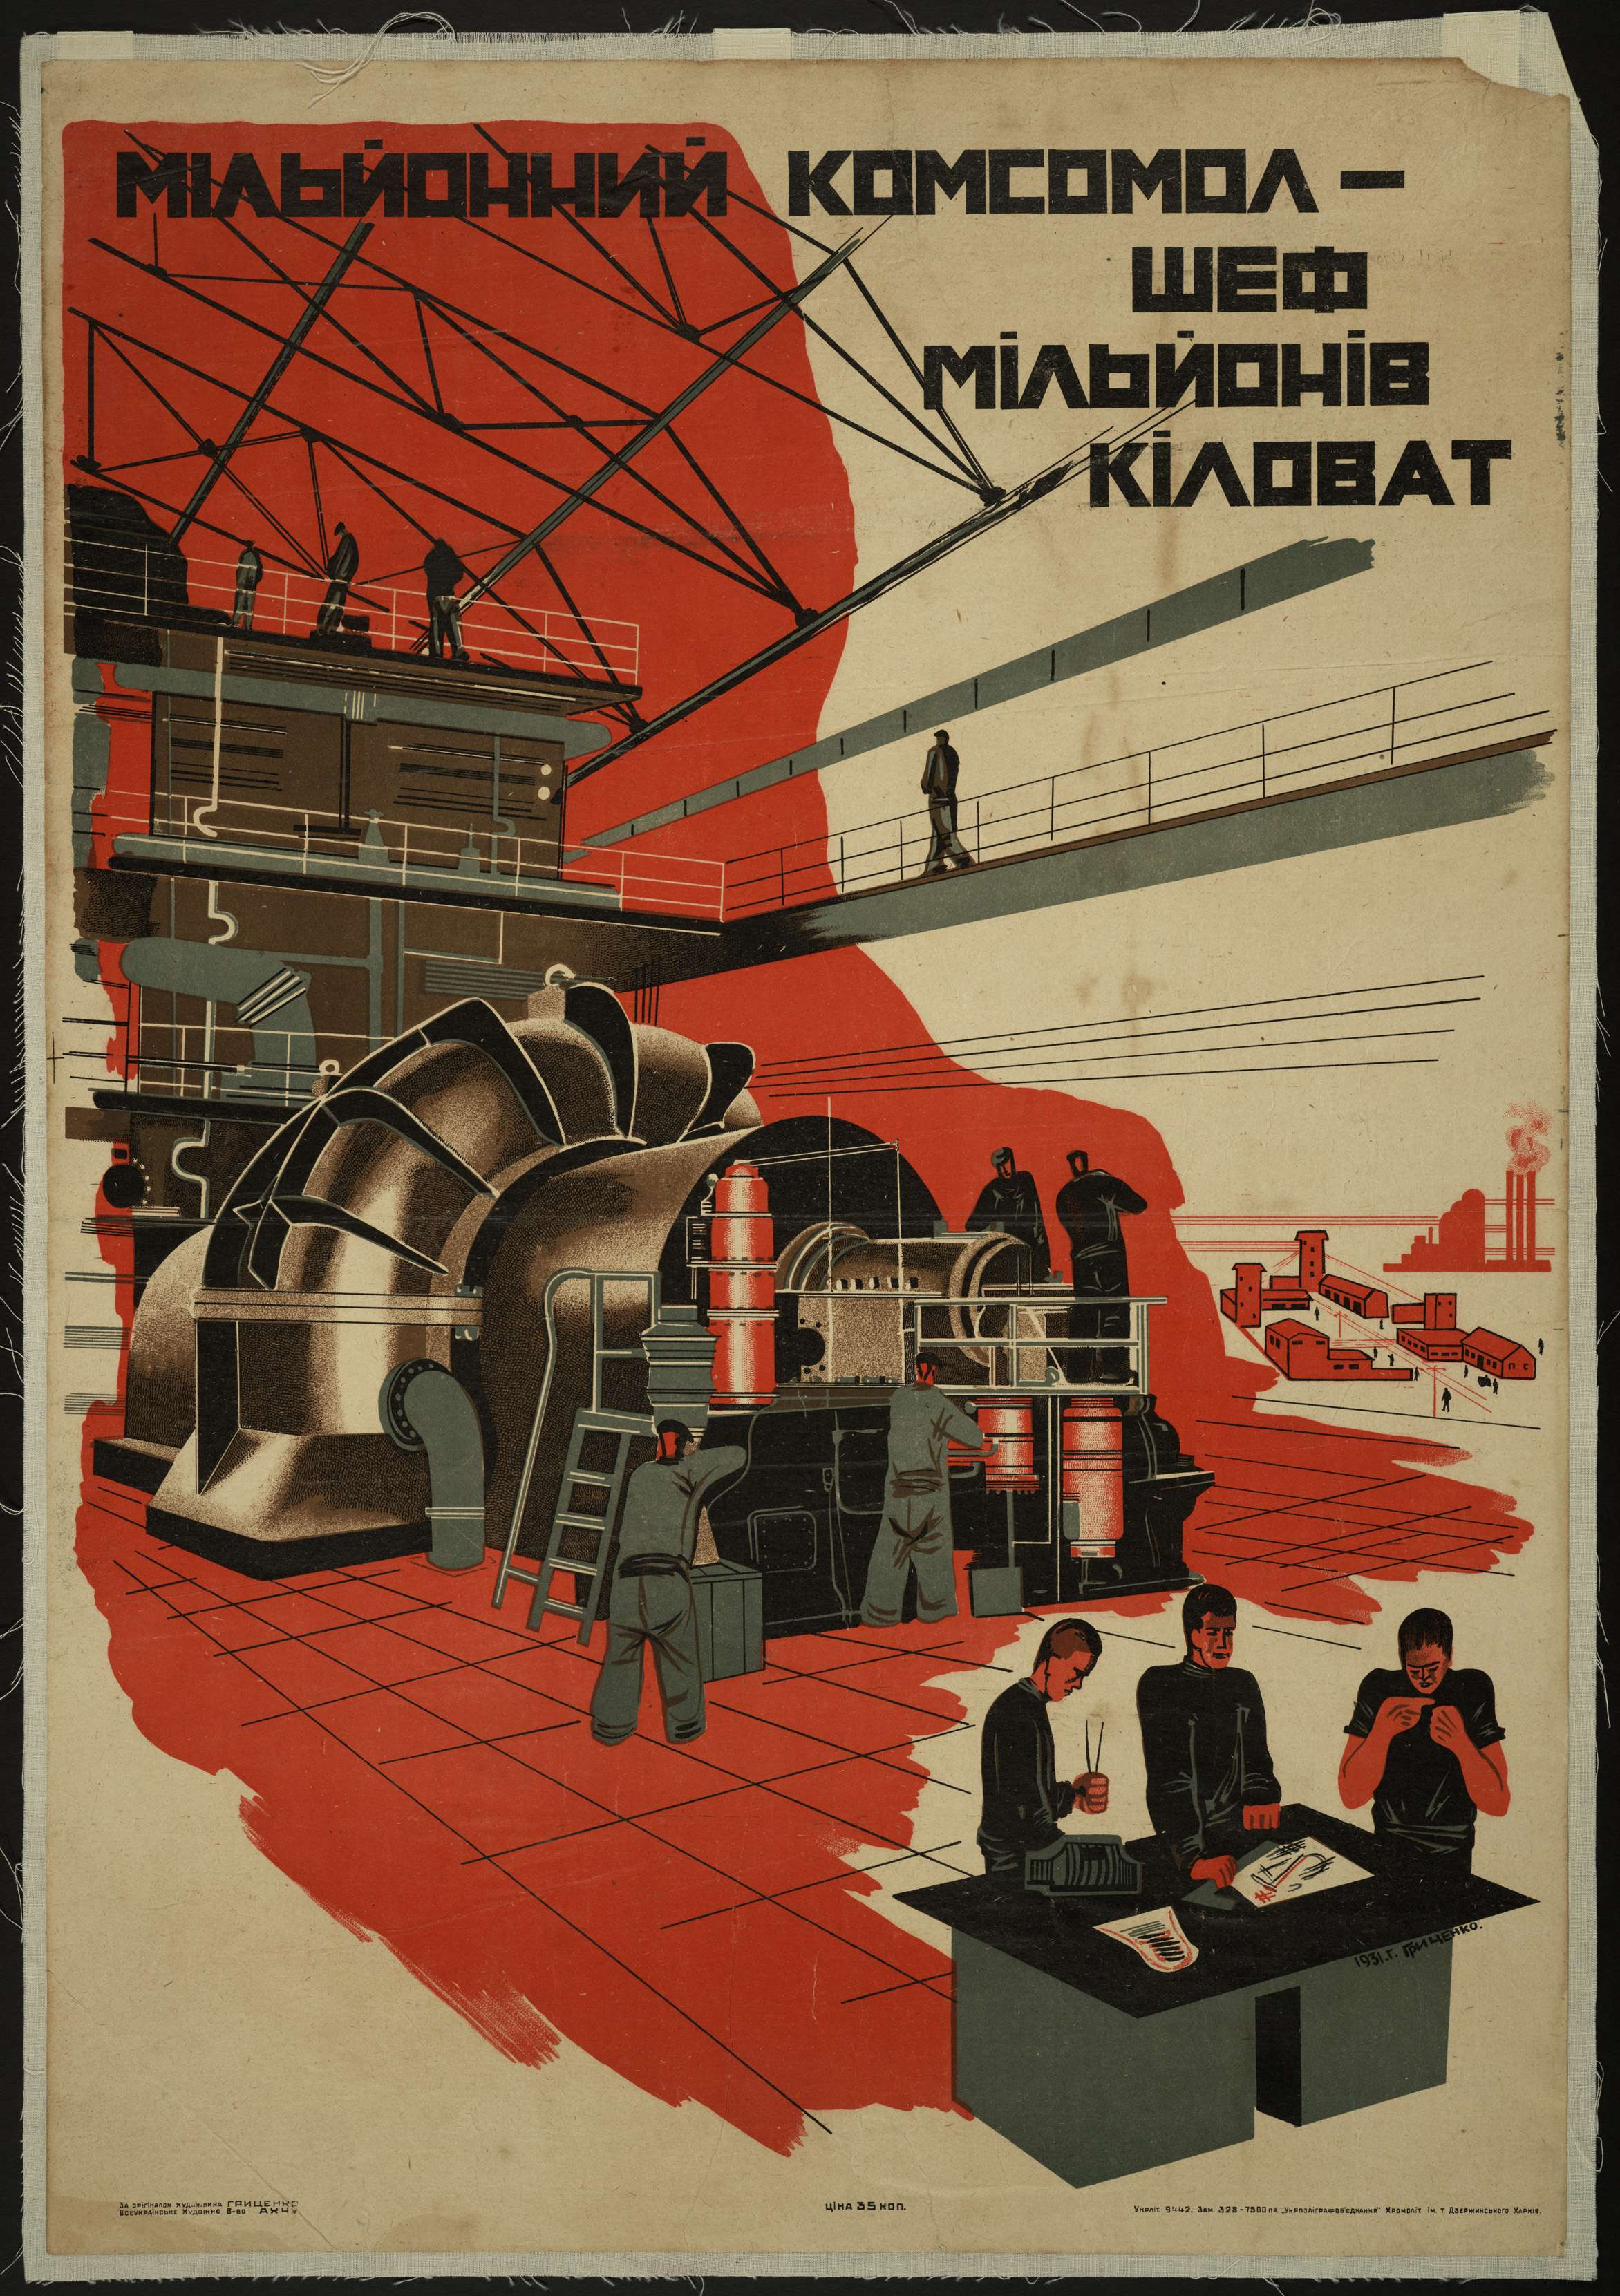 "G. Gritsenko, ""One Million Komsomoltsy - Master of One Million Kilowatts"" Lithograph, 72.7 cm x 50.4 cm, 1931, Dr. Harry Bakwin and Dr. Ruth Morris Bakwin Soviet Posters Collection, Special Collections Research Center, The University of Chicago Library"